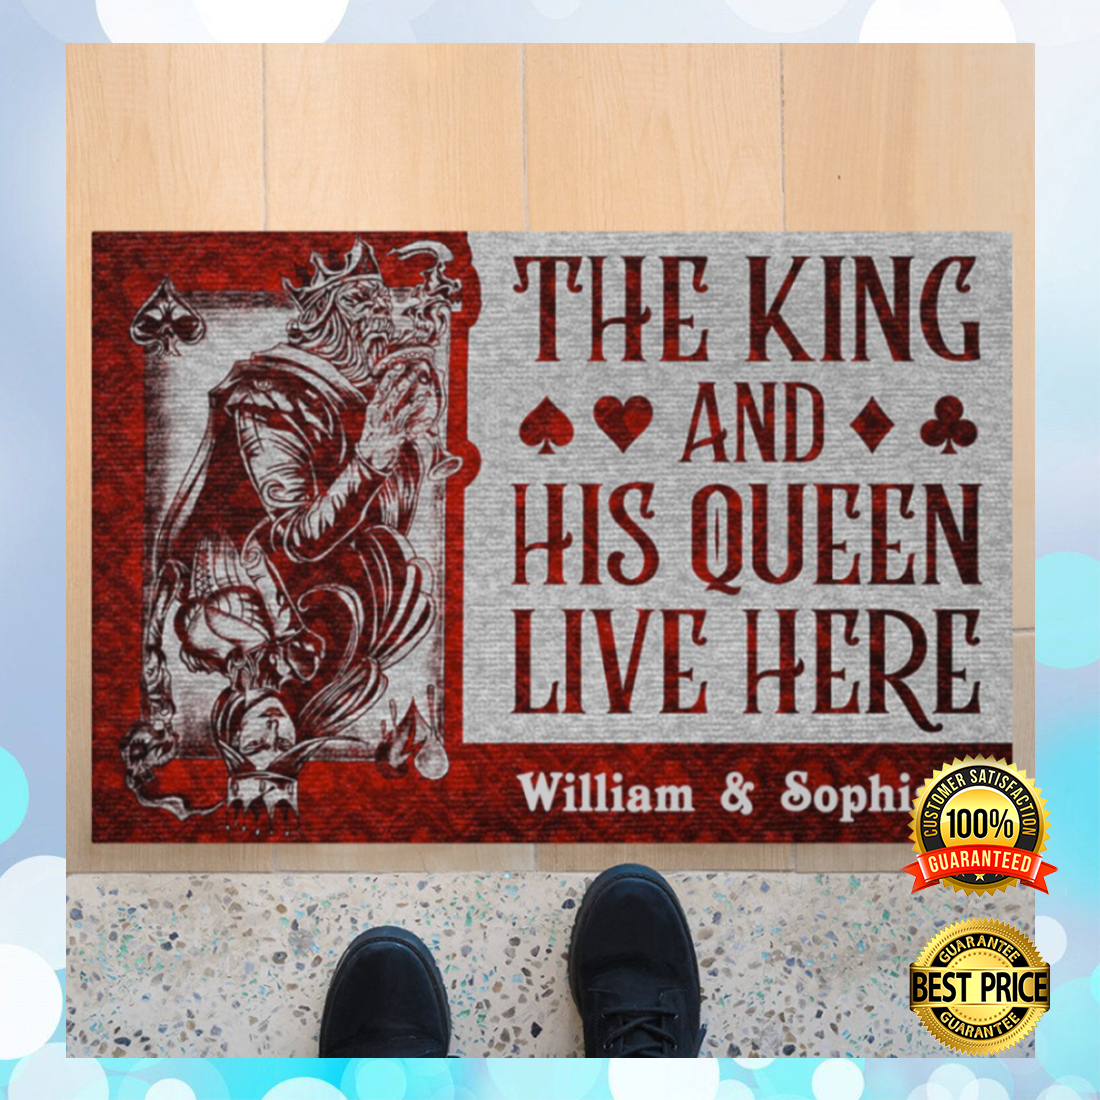 Personalized the king and his queen live here doormat 5